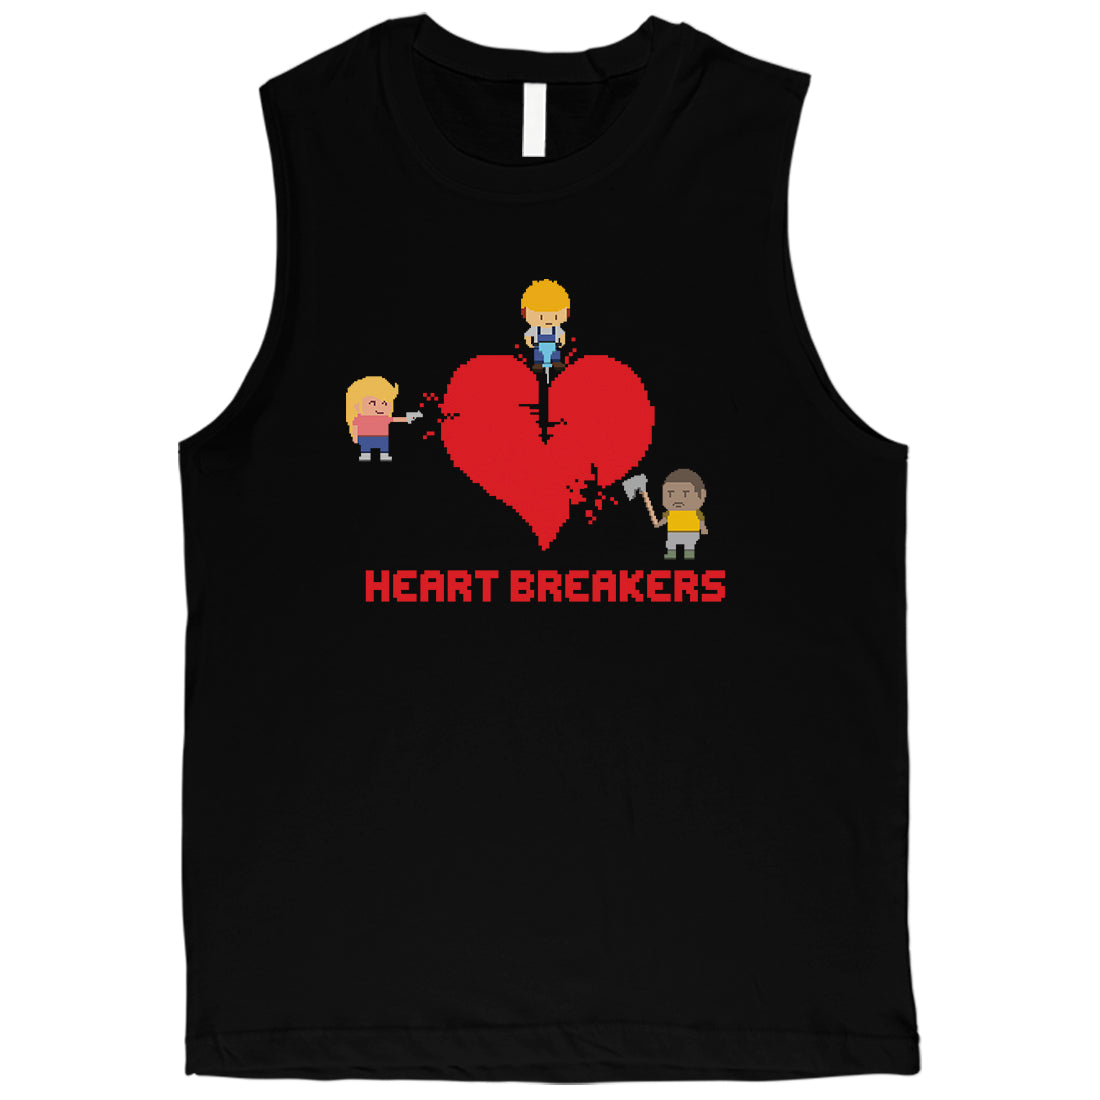 b0d8af143b134e Heart Breakers Mens Funny Graphic Workout Muscle Tank Top For Him